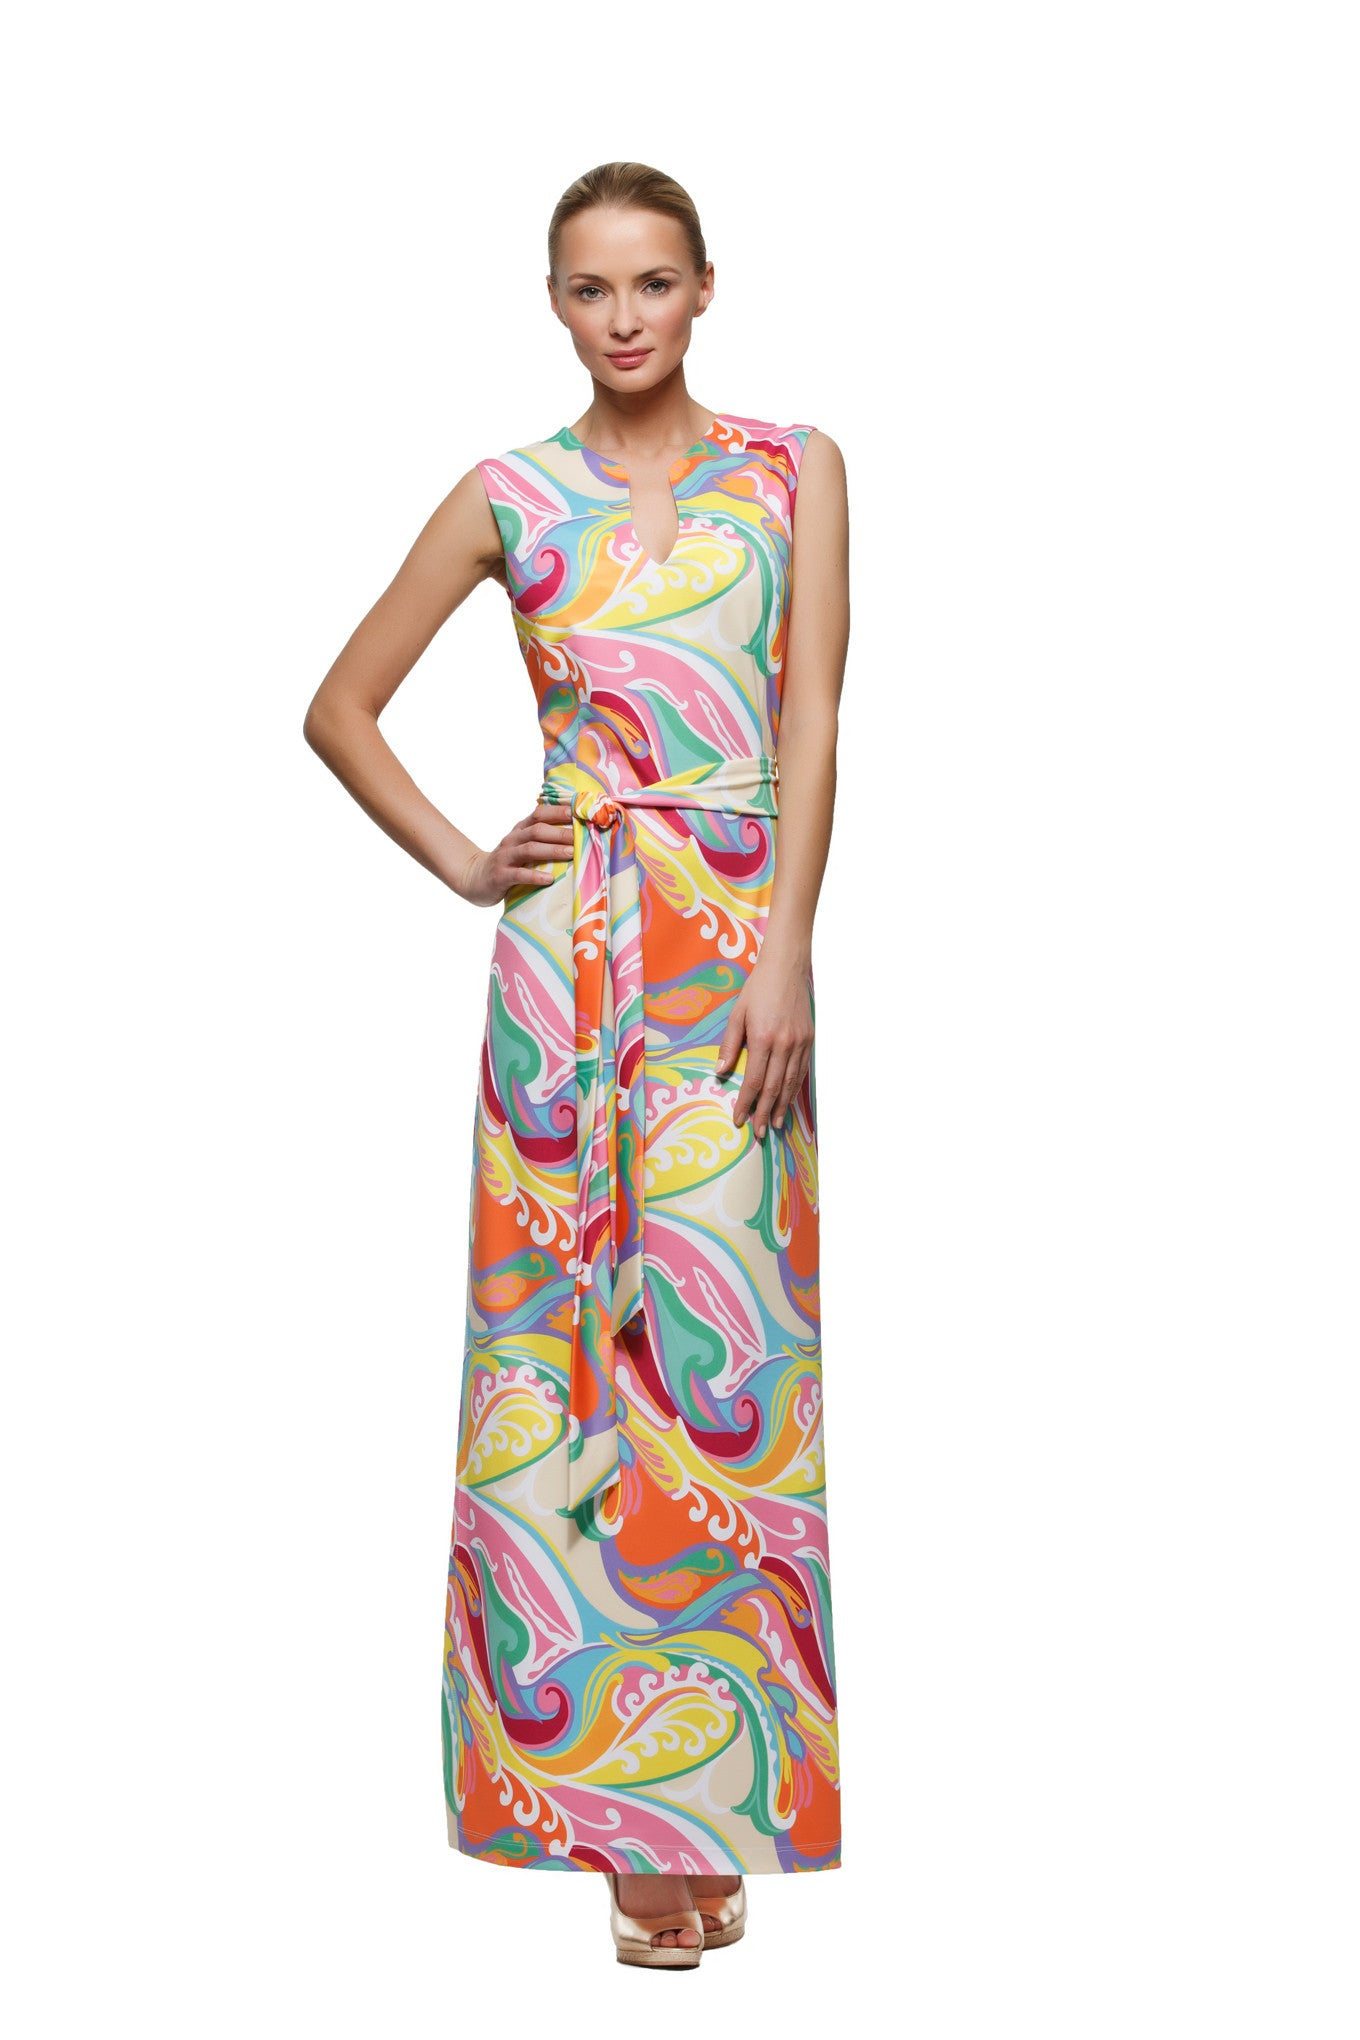 Maxi Dress   Women's Apparel   Made in the USA   Rulon Reed